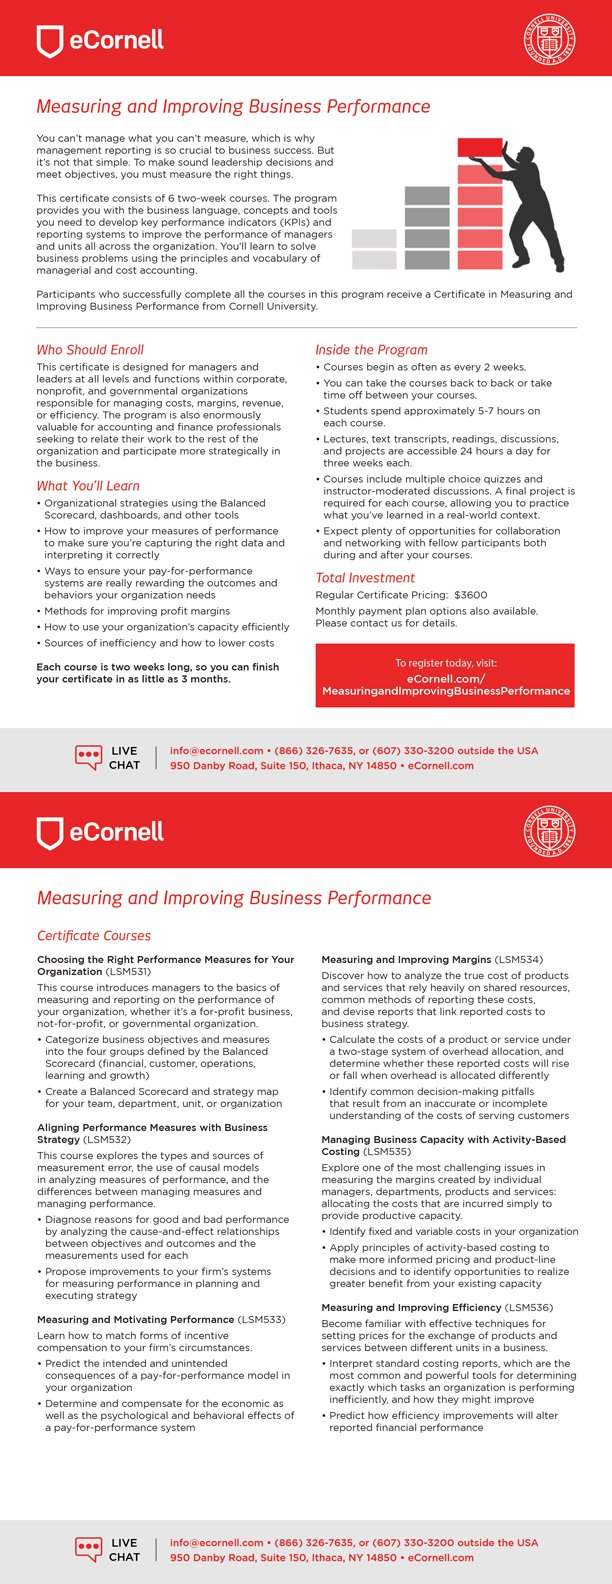 Measuring and Improving Business Performance Flyer